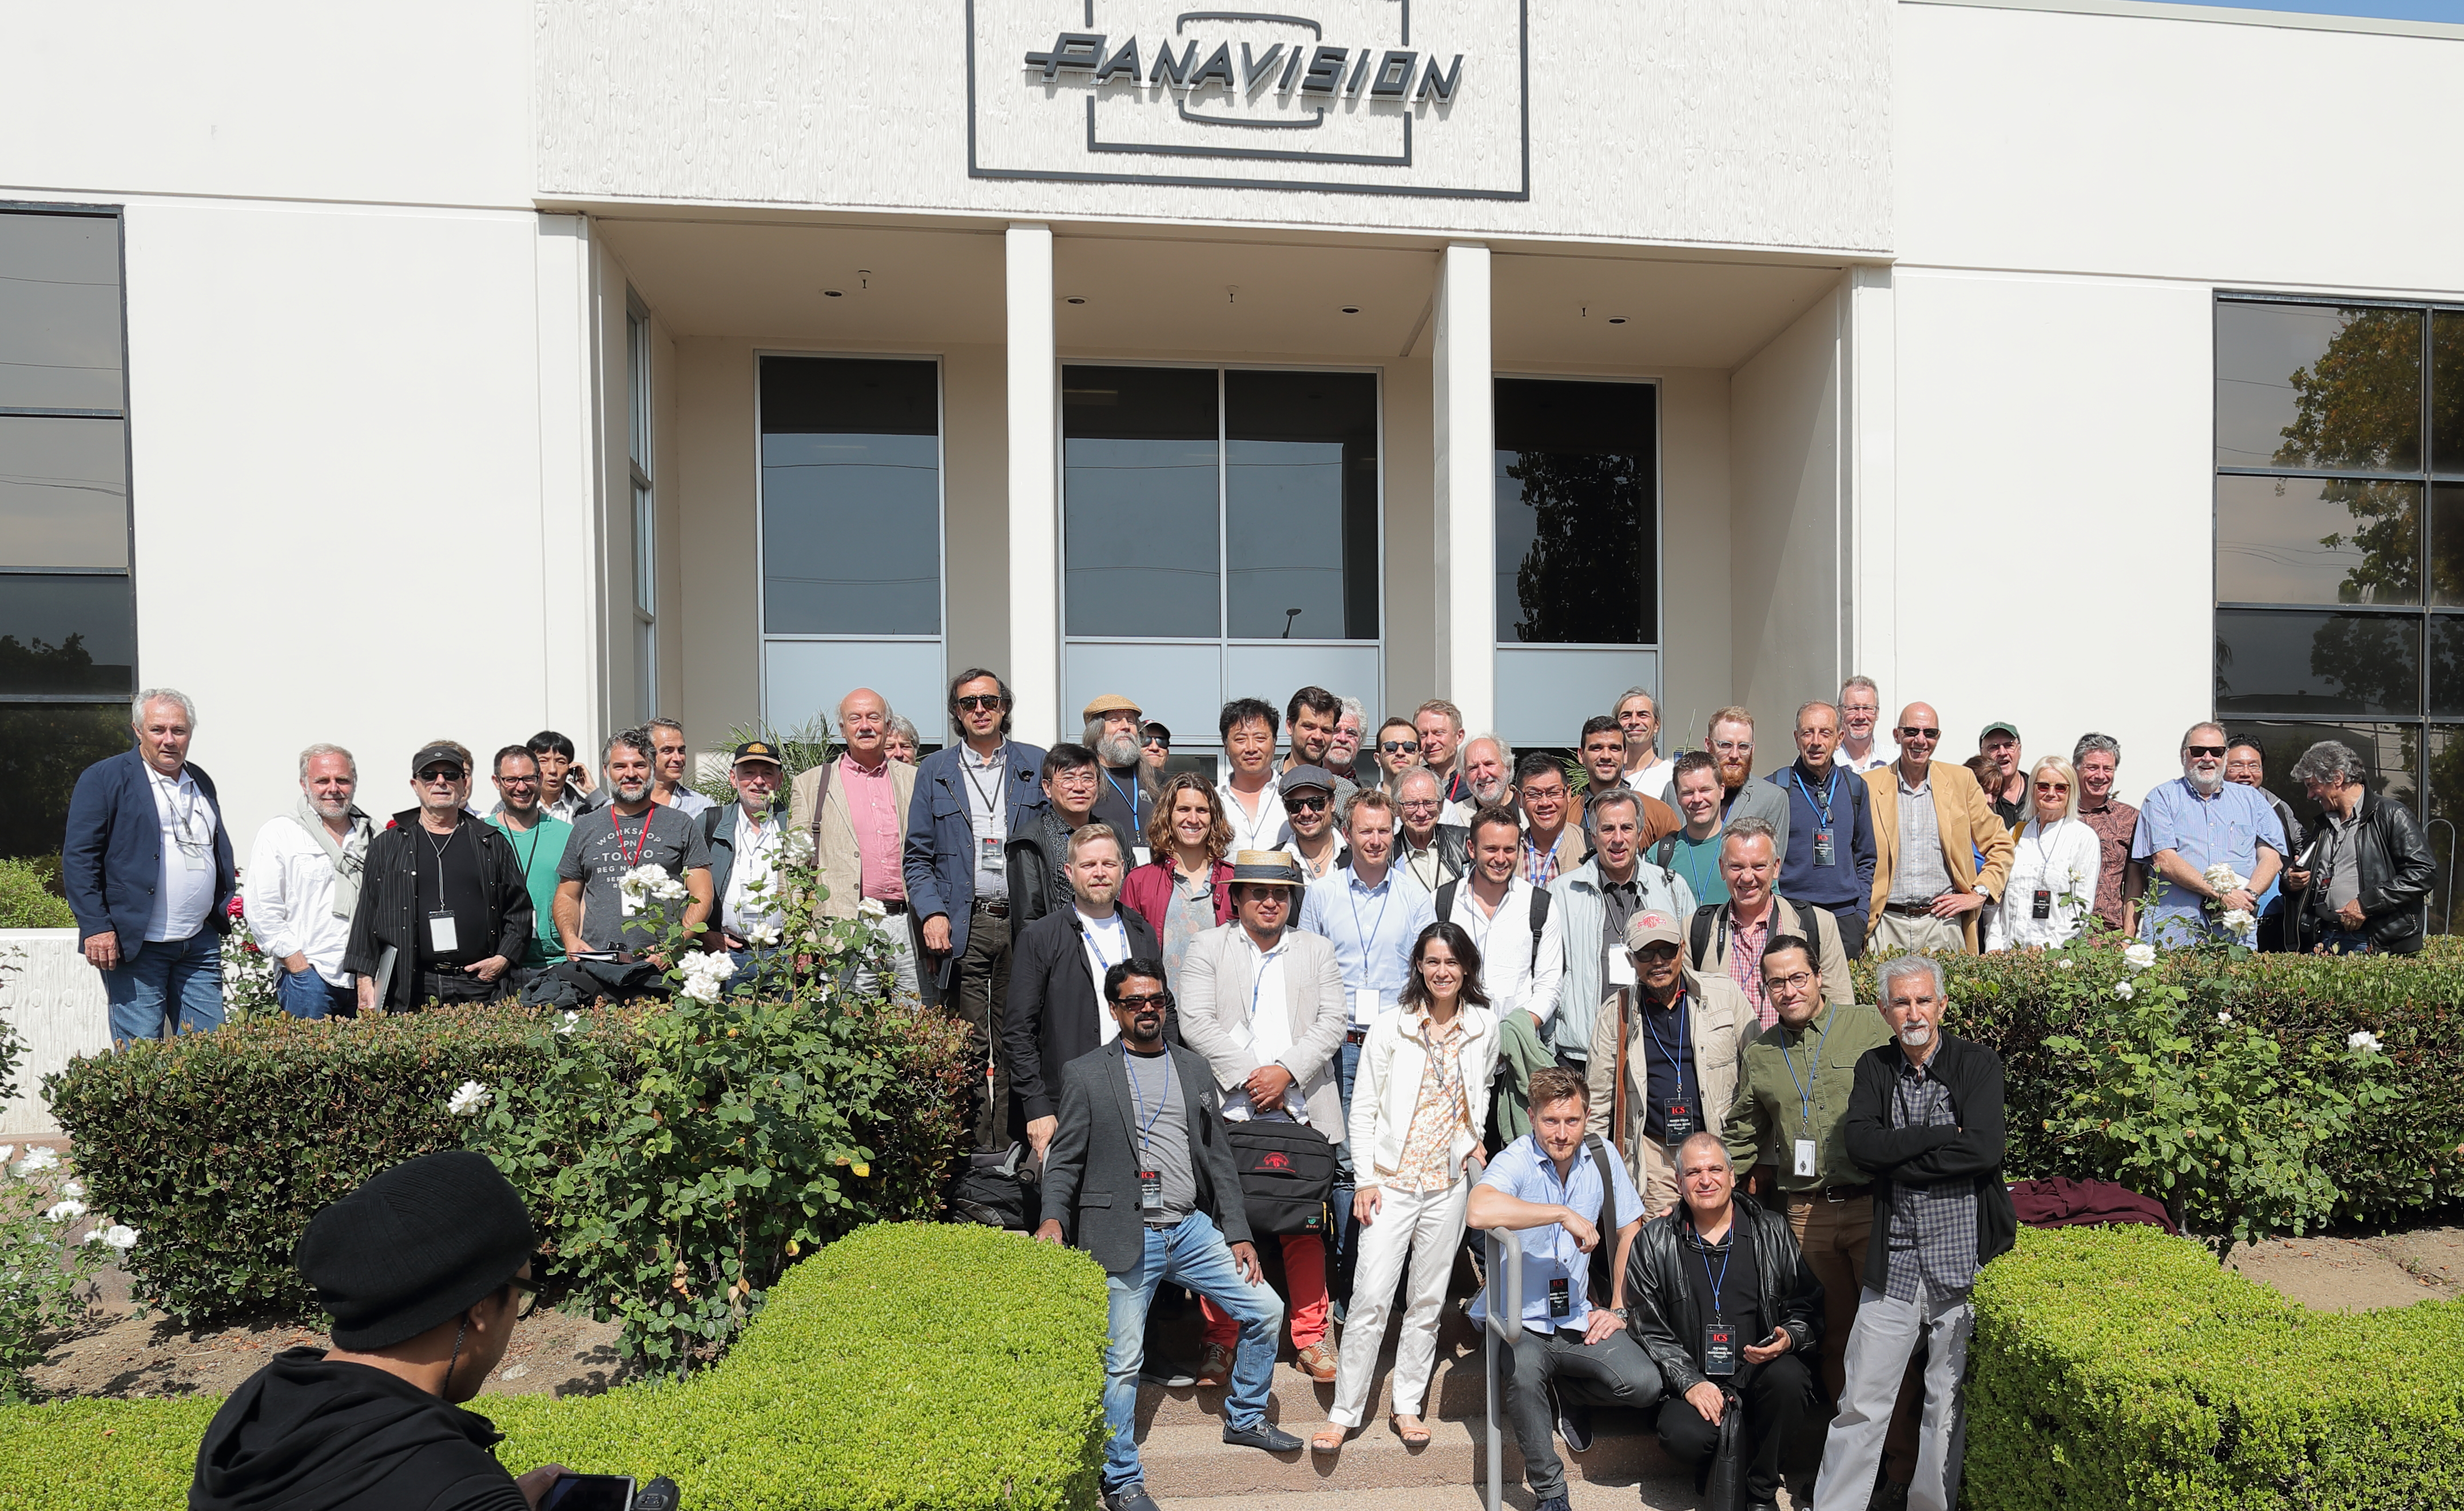 ICS participants arrive at Panavision for a presentation on formats and optics. Photo by James Neihouse, ASC